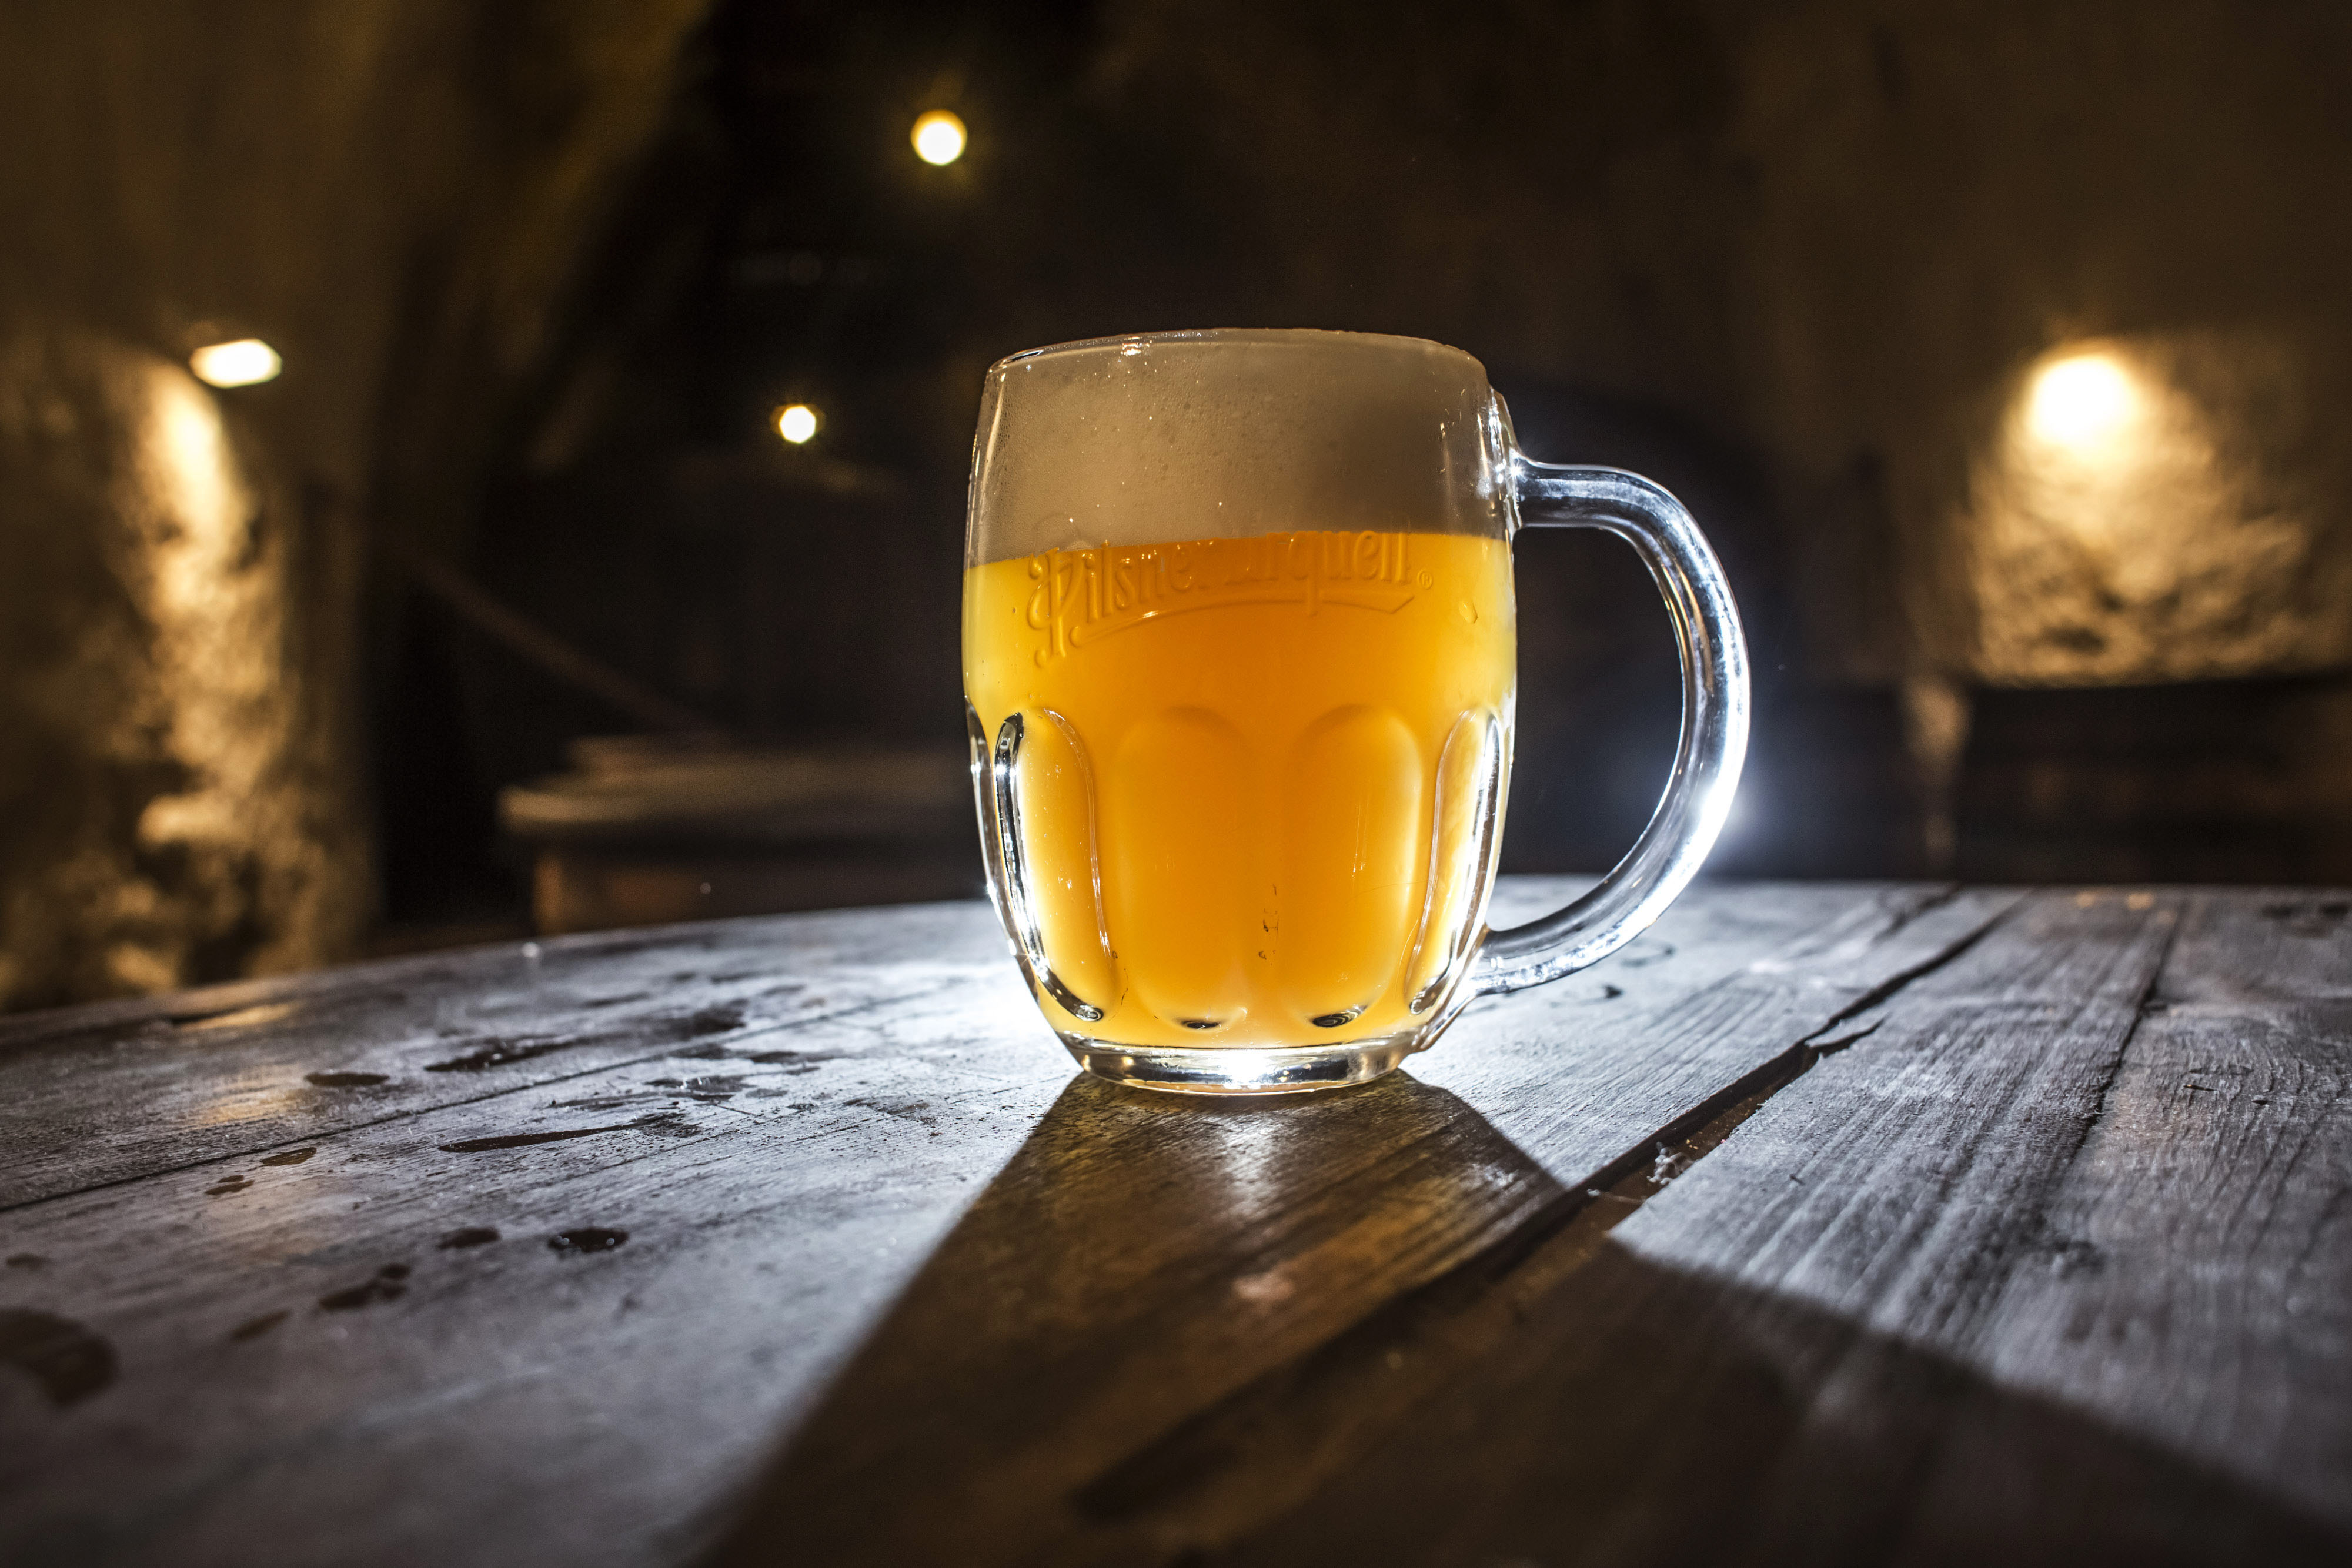 The 11 best beers of the year | News India Times